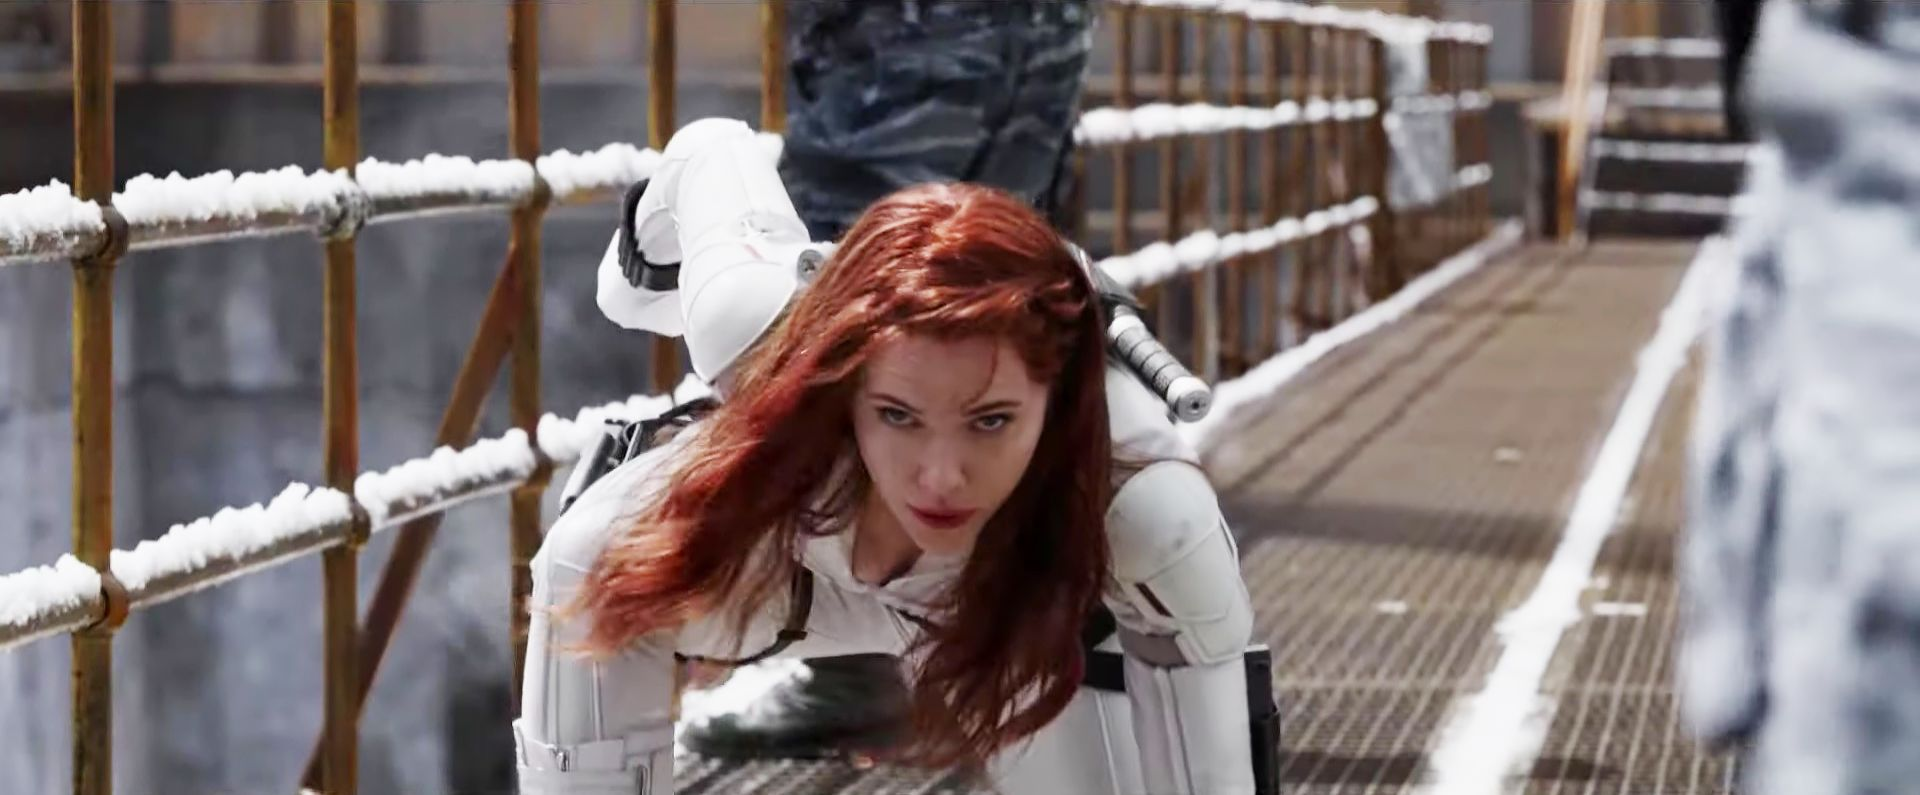 Black Widow S Trailer Hints At The Return Of An Mcu Character